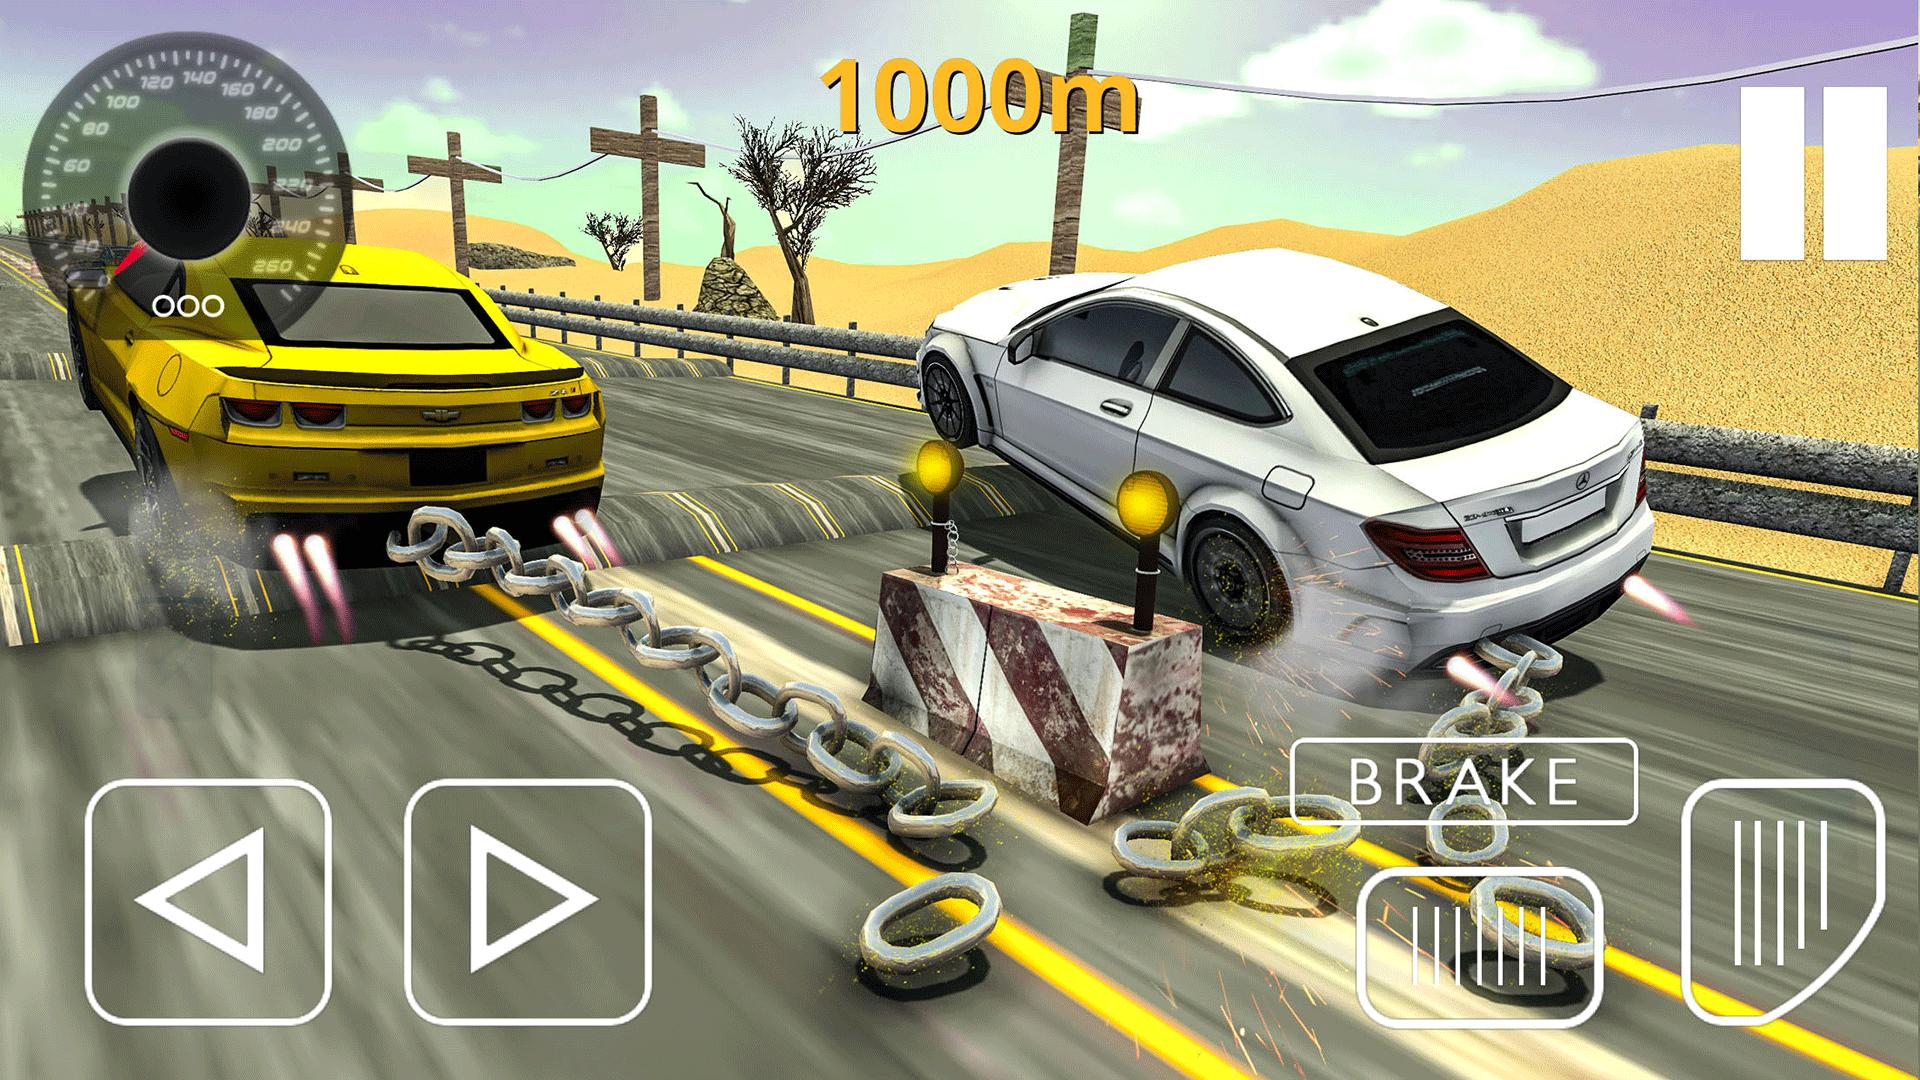 Chained Cars Impossible Stunts 3d Car Games 2020 For Android Apk Download